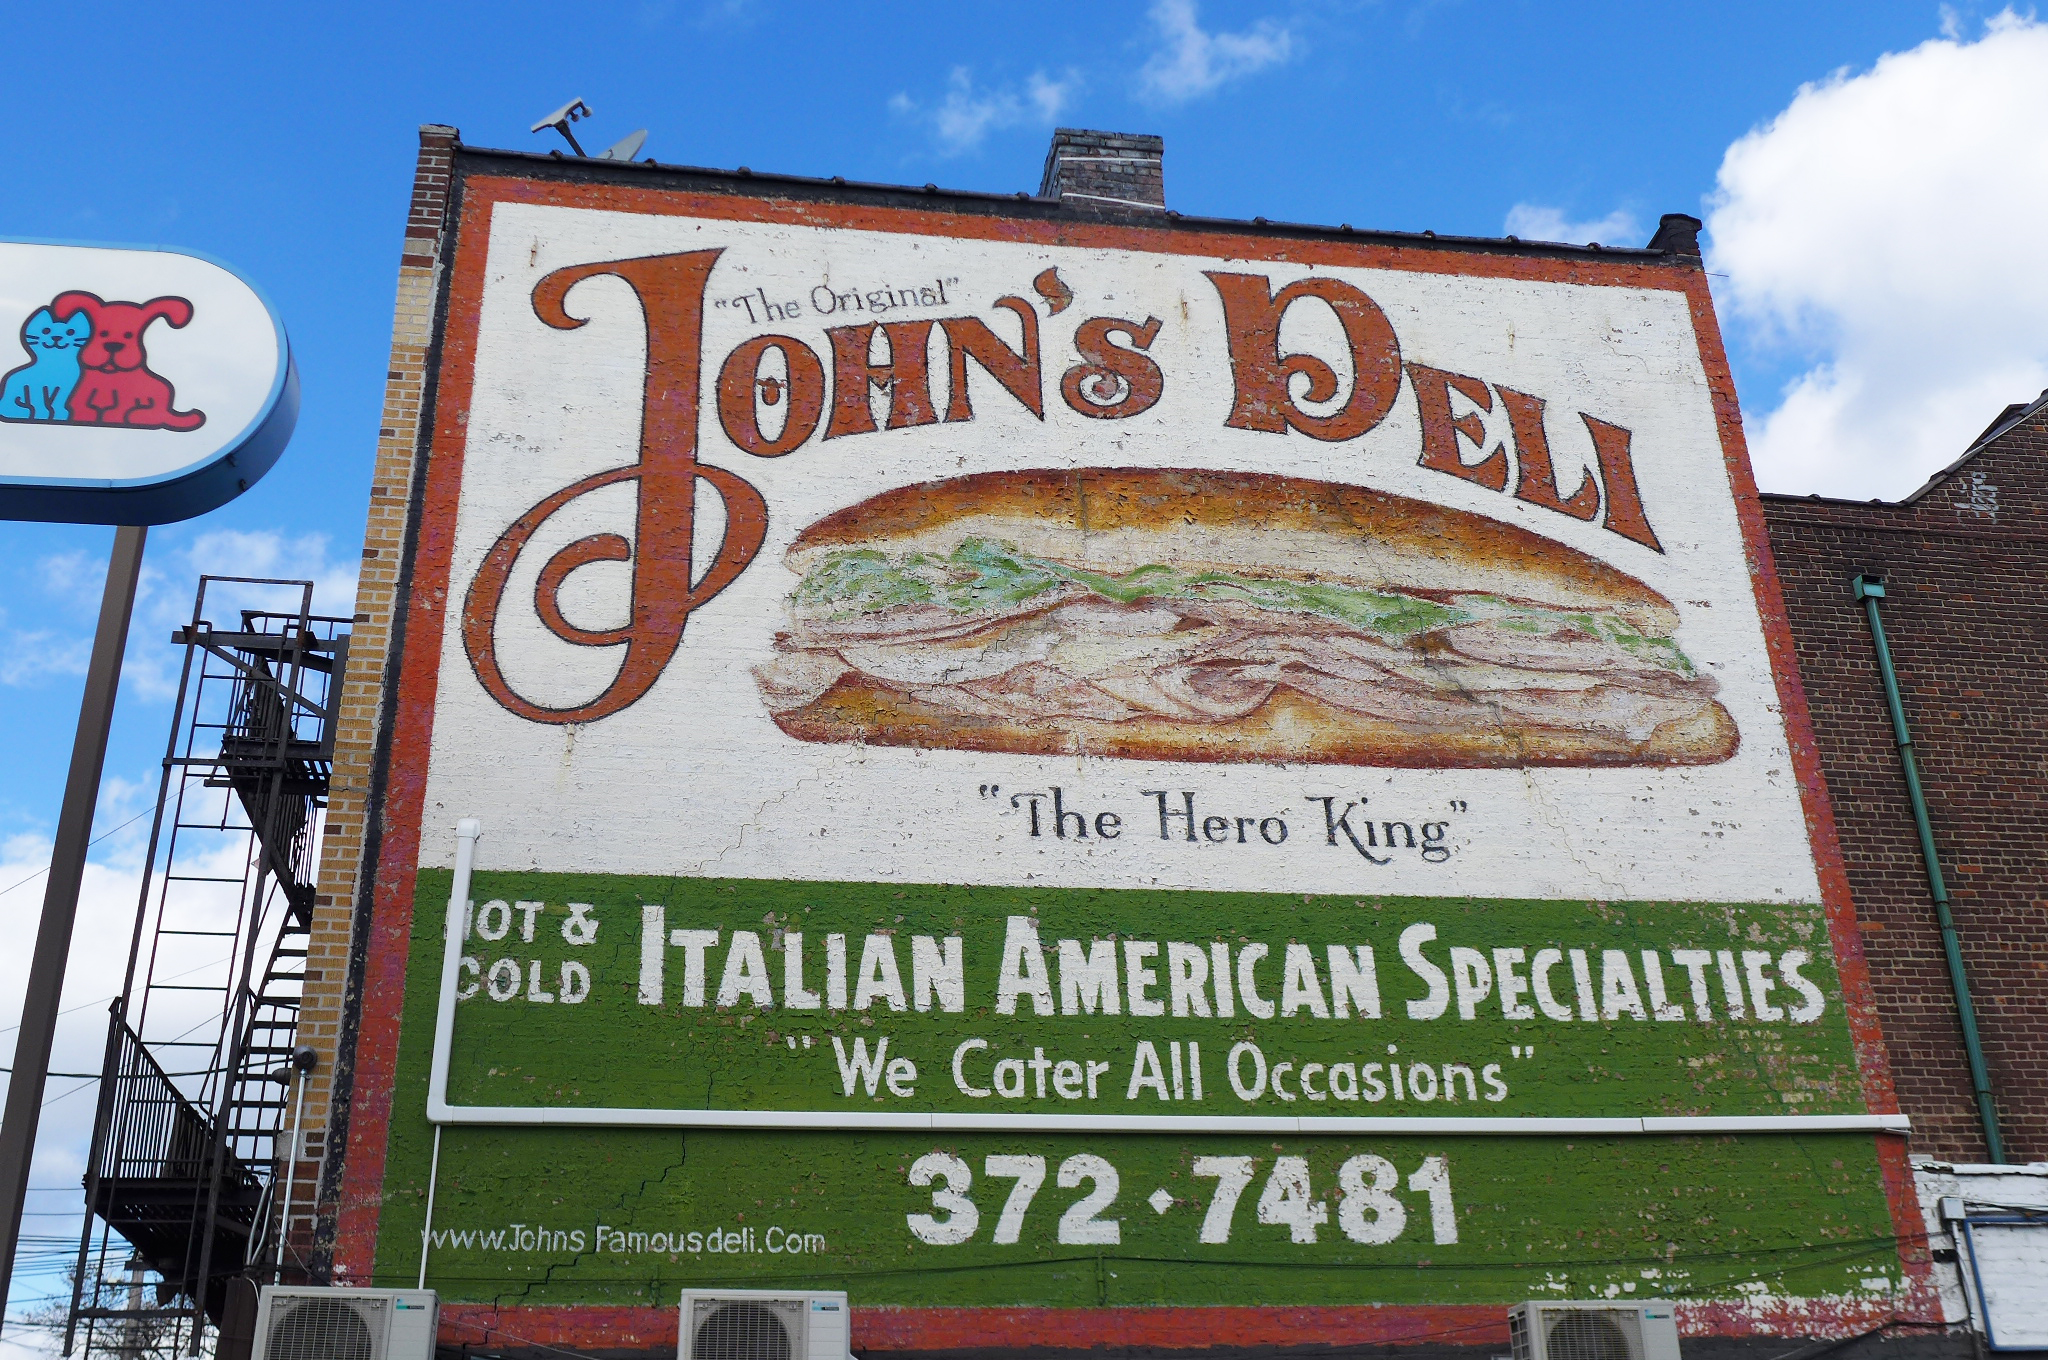 A sign painted on the entire side of the building reads John's Deli.